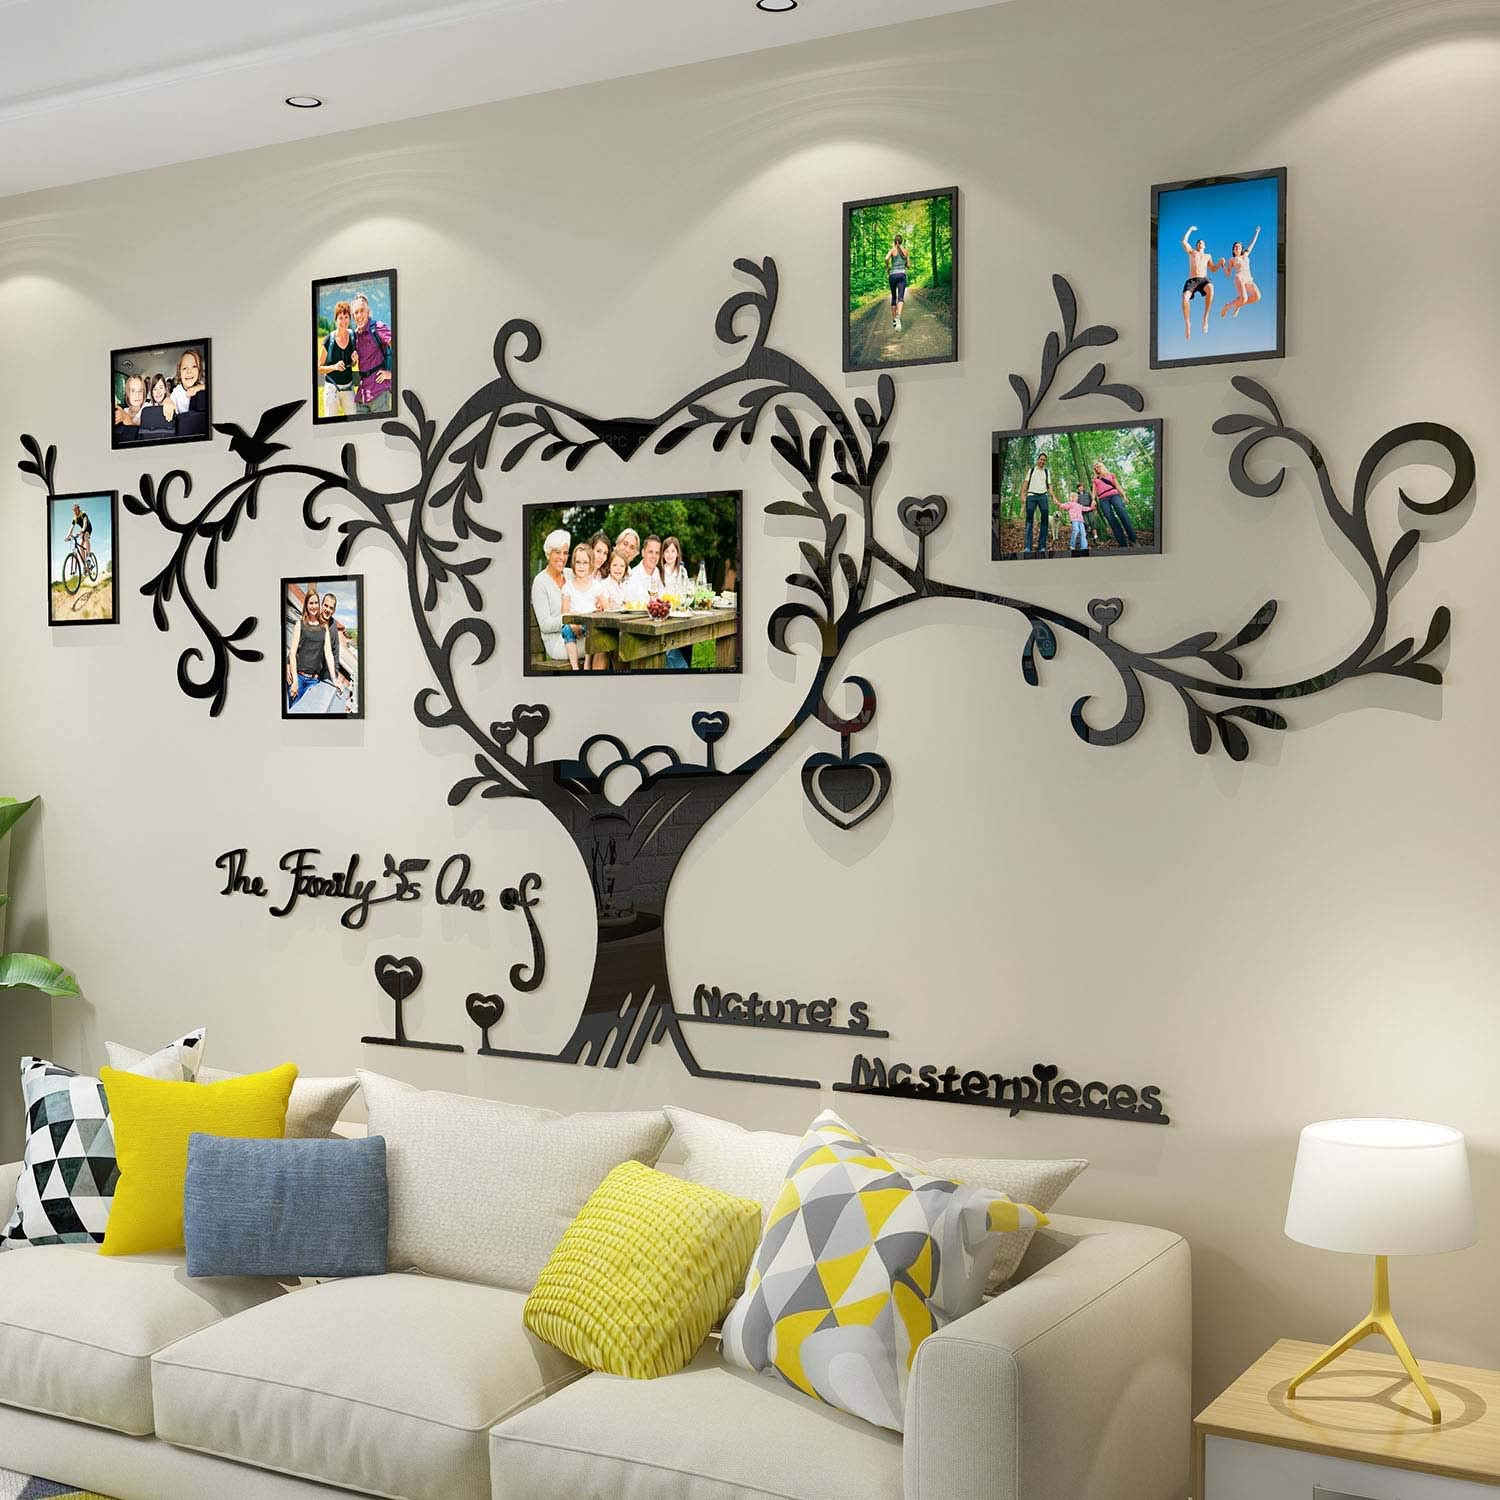 Words Wall Decals Wall Sticker Quotes Inspiration Do What You Love Wall Sticker Decal Wall Decor Family